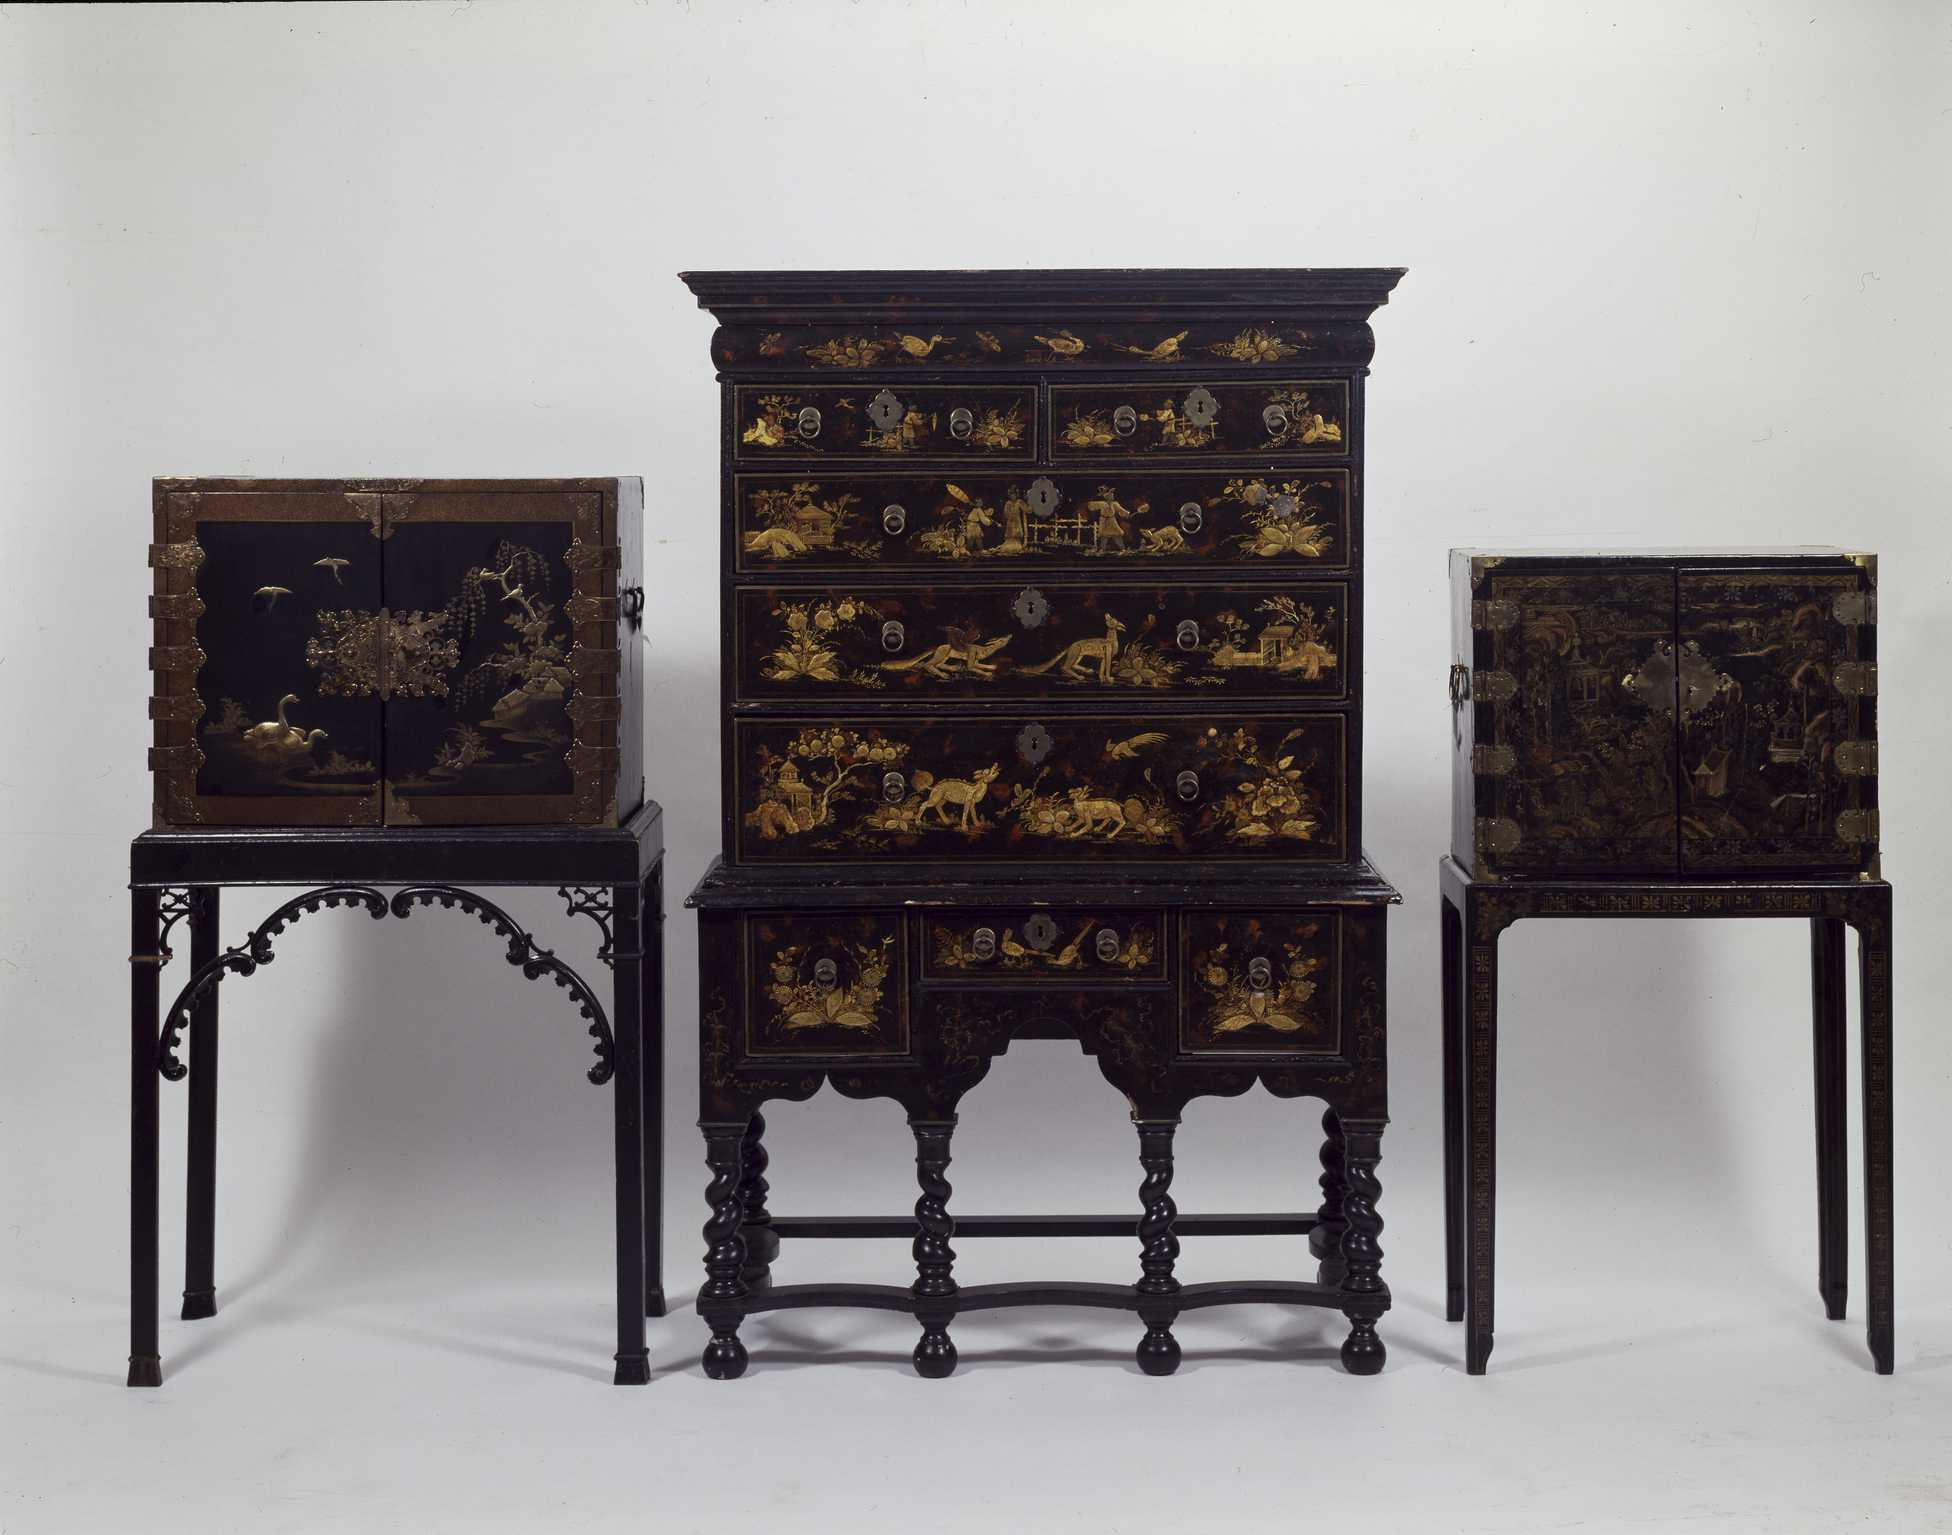 Credenza Definition In English : Defining confusing antique furniture terms and names